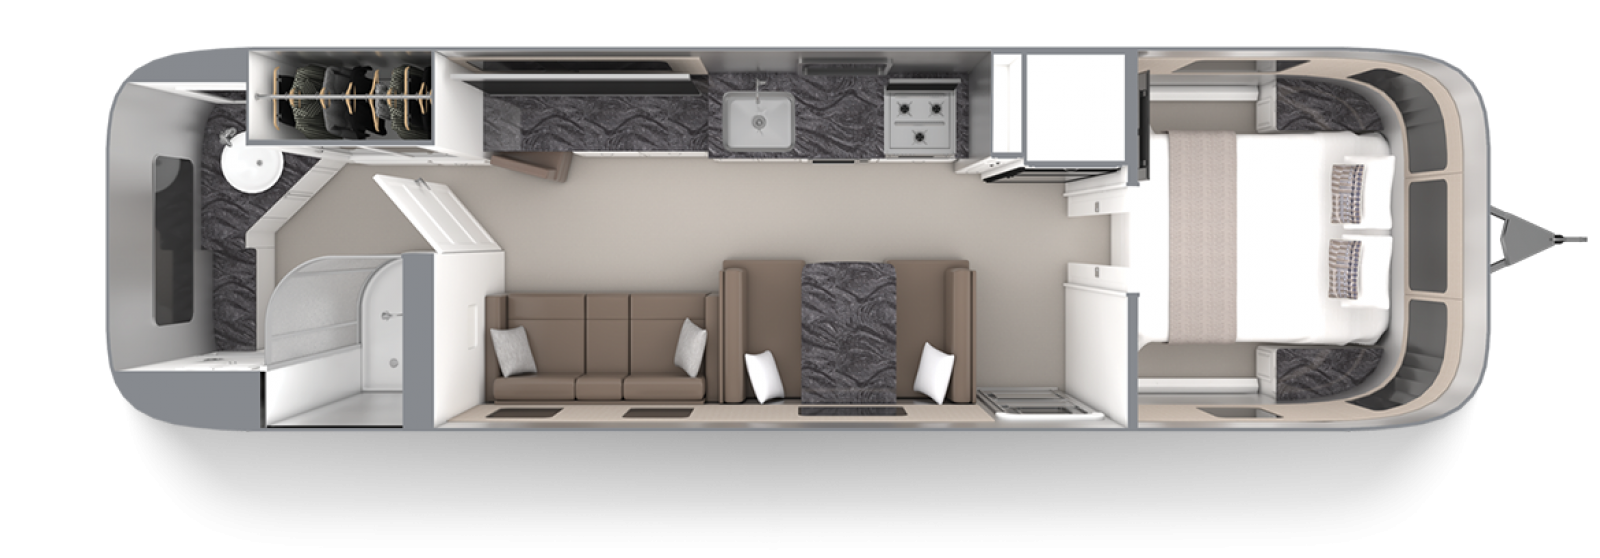 Airstream-Classic-Comfort-White-with-Cafe-Latte-Floor-Plan